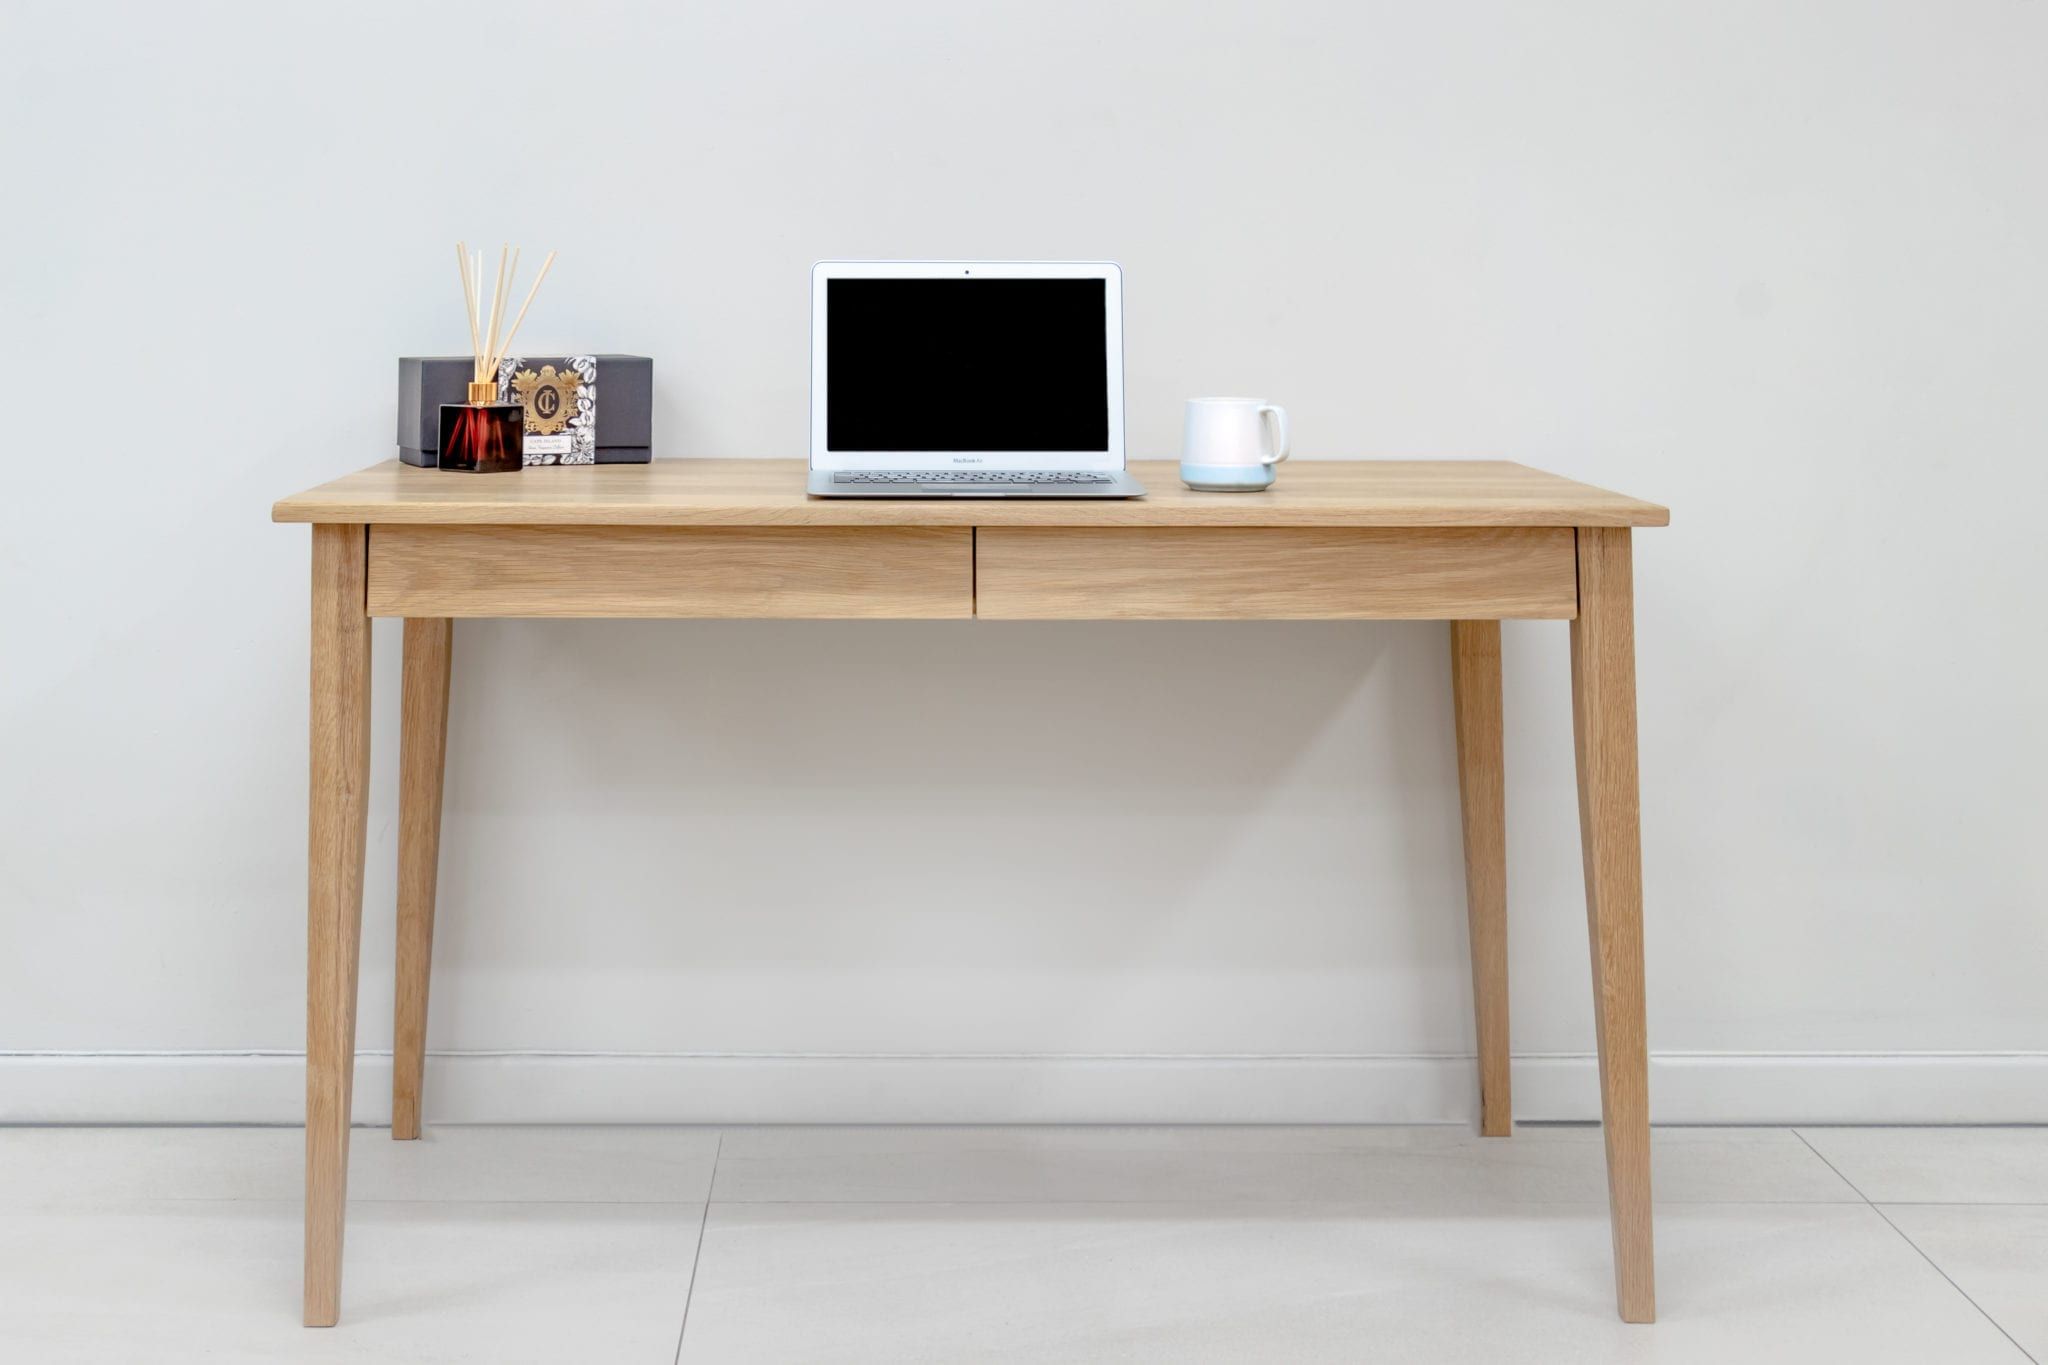 Solid Oak Desk with Drawers - Beautifully Crafted Wood Furniture Shop